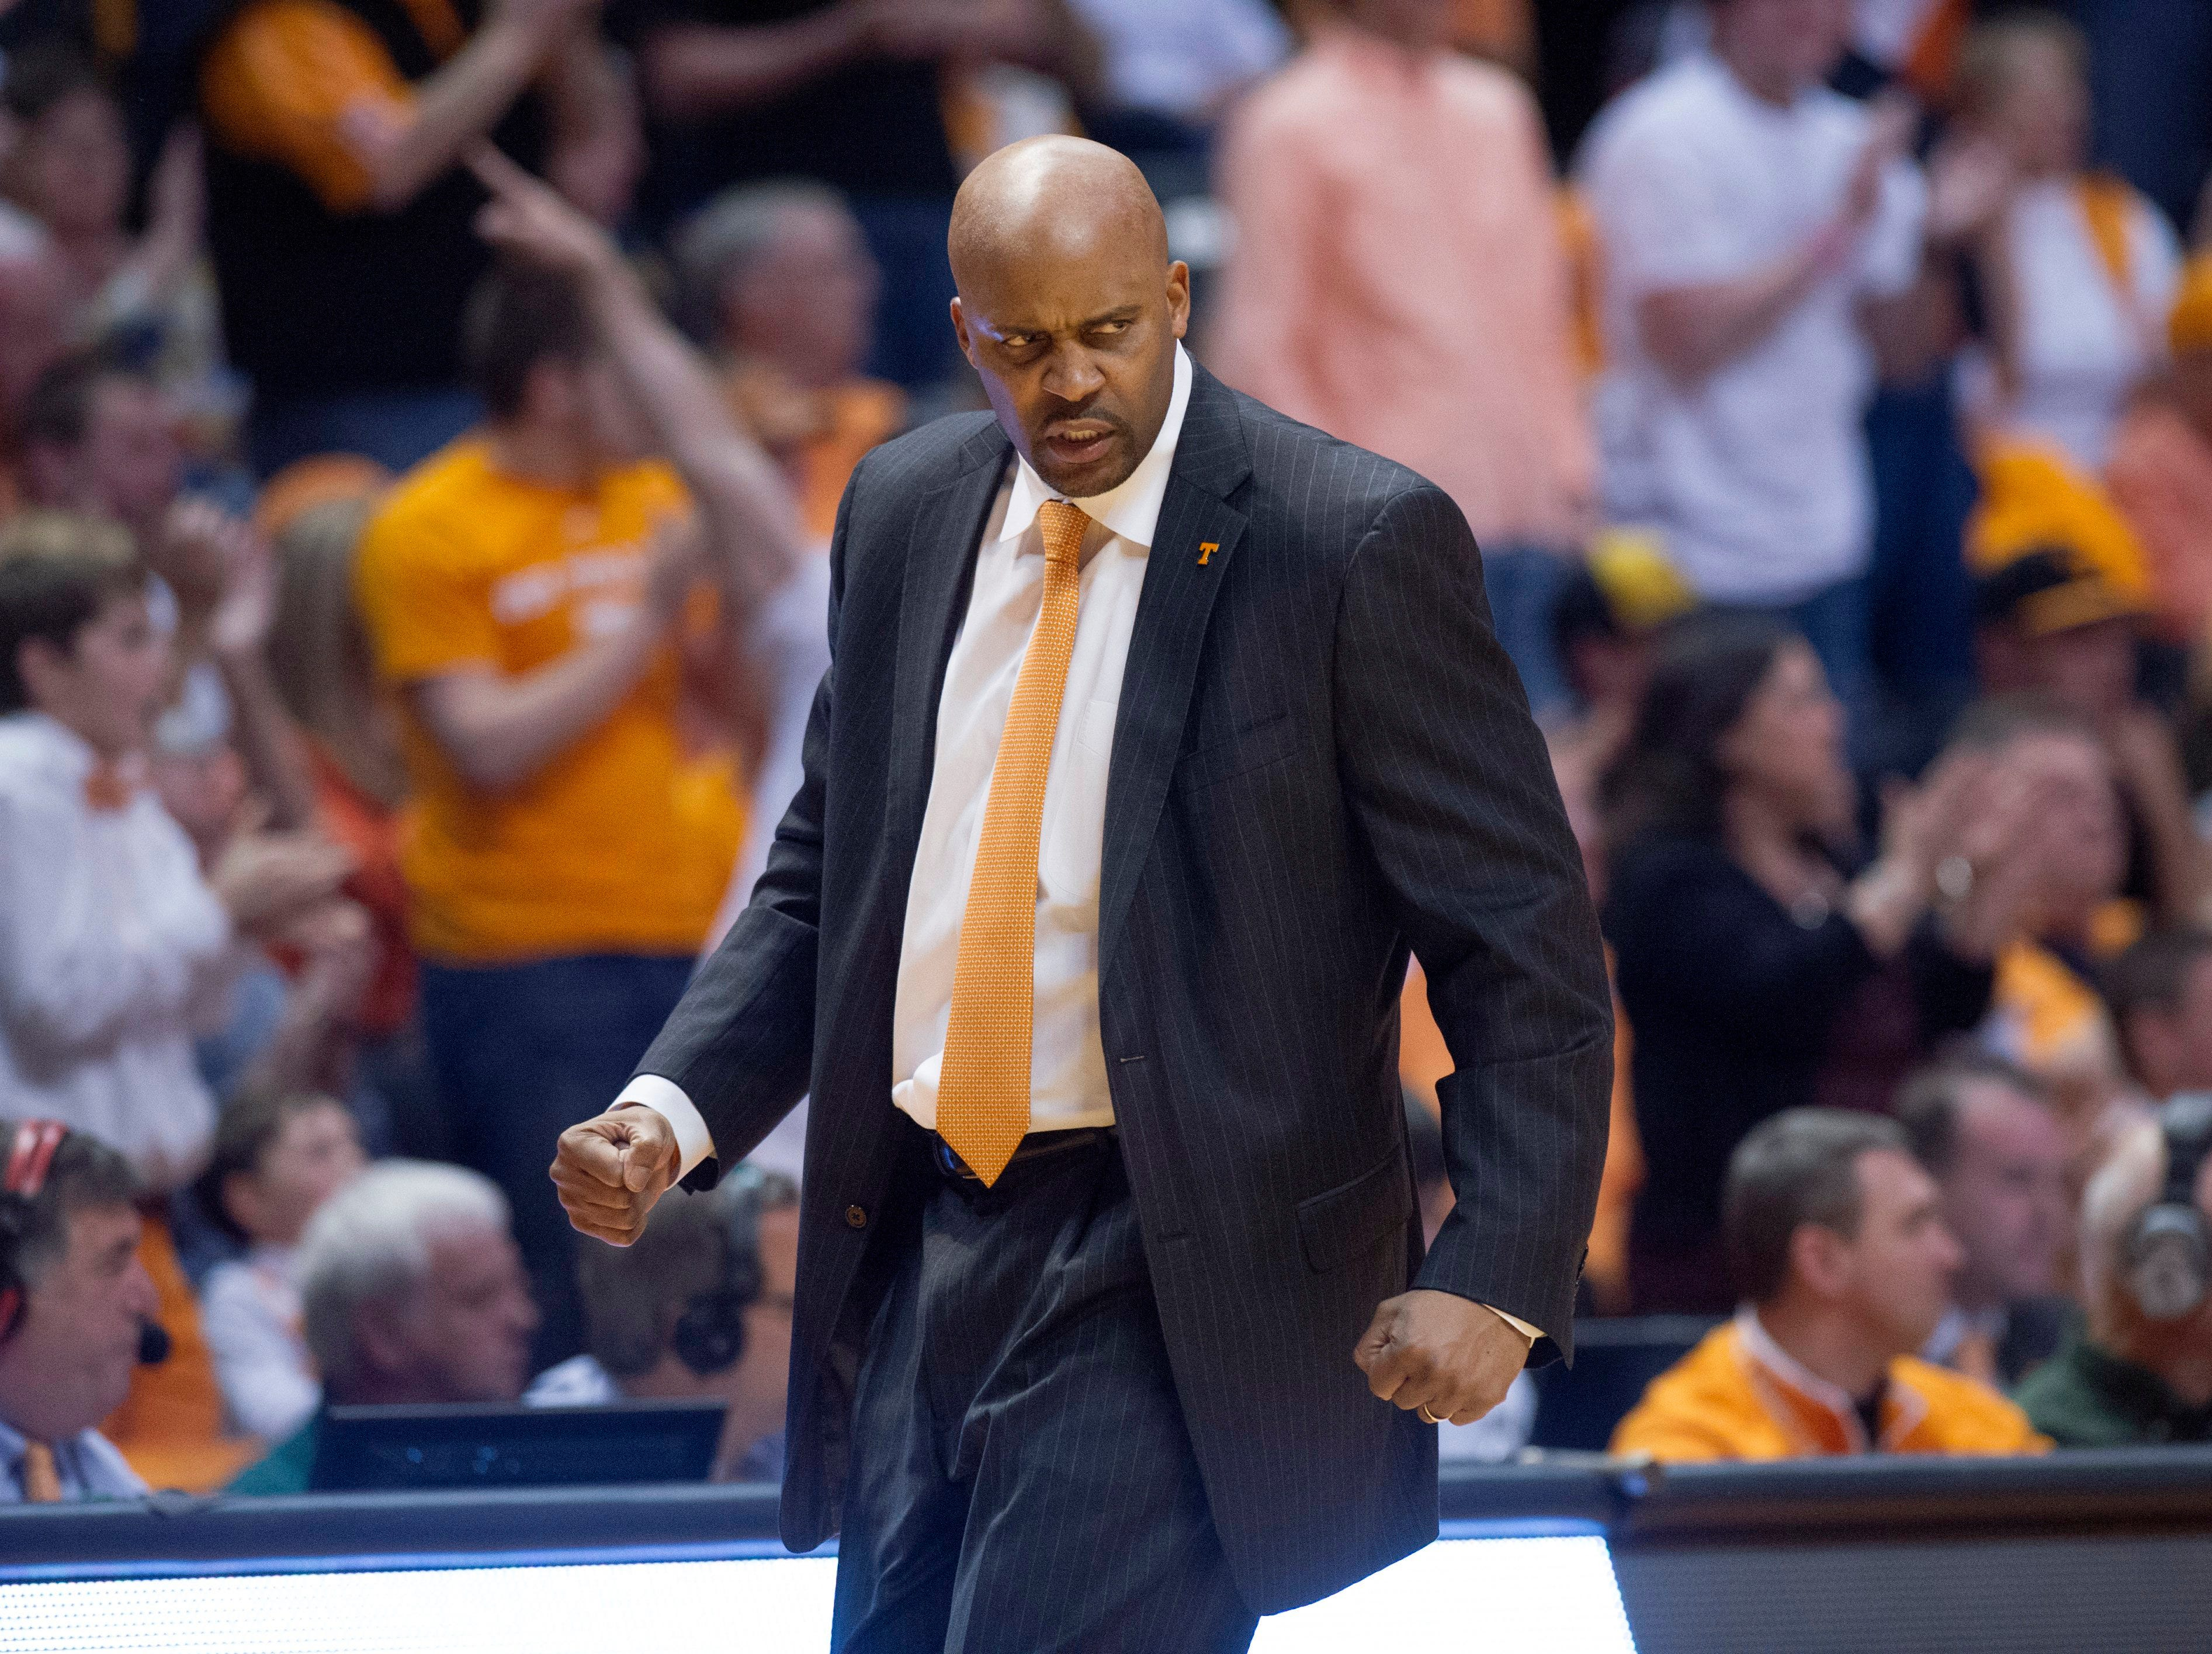 Tennessee head coach Cuonzo Martin reacts to a defensive break for the Vols as they play Missouri at Thompson-Boling Arena Saturday, Mar. 9, 2013. Tennessee won 64-62 over Missouri.